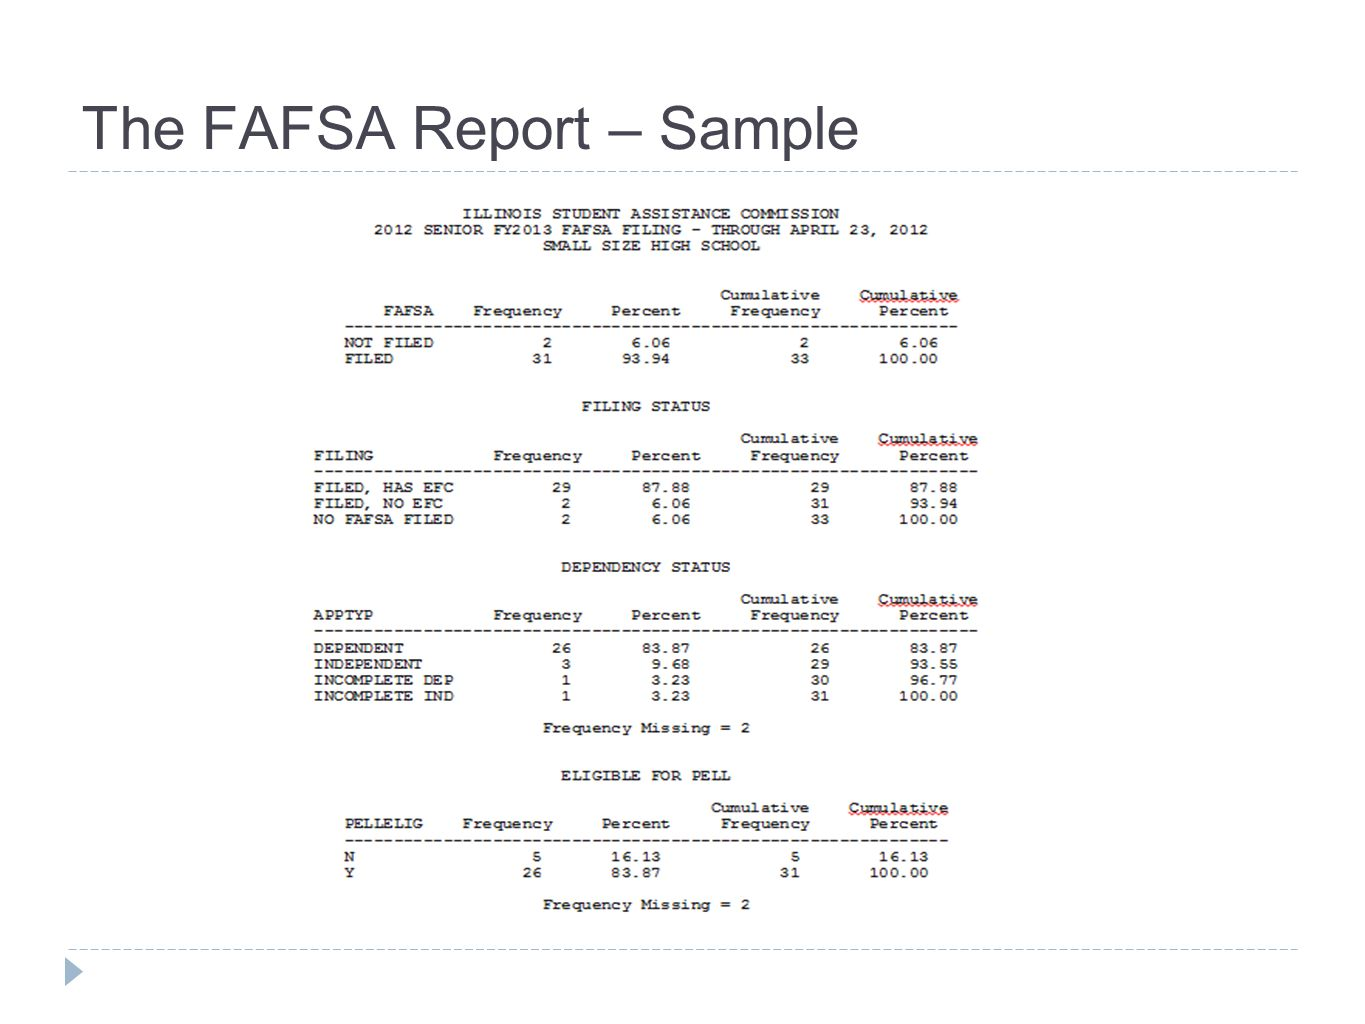 The FAFSA Report – Sample